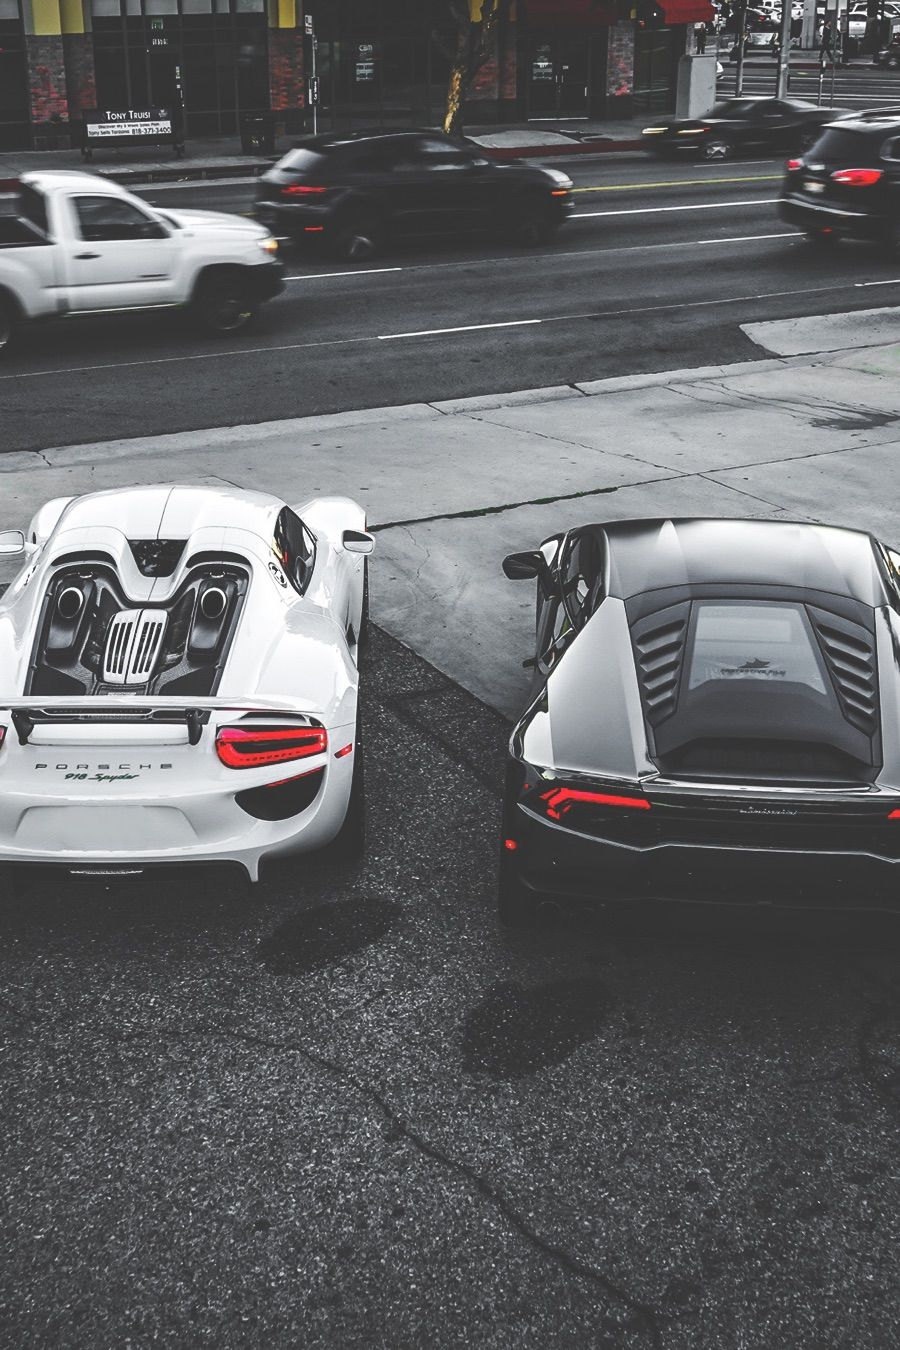 porsche 918 vs lamborghini huracan automotive pinterest porsche 918 lamborghini huracan. Black Bedroom Furniture Sets. Home Design Ideas